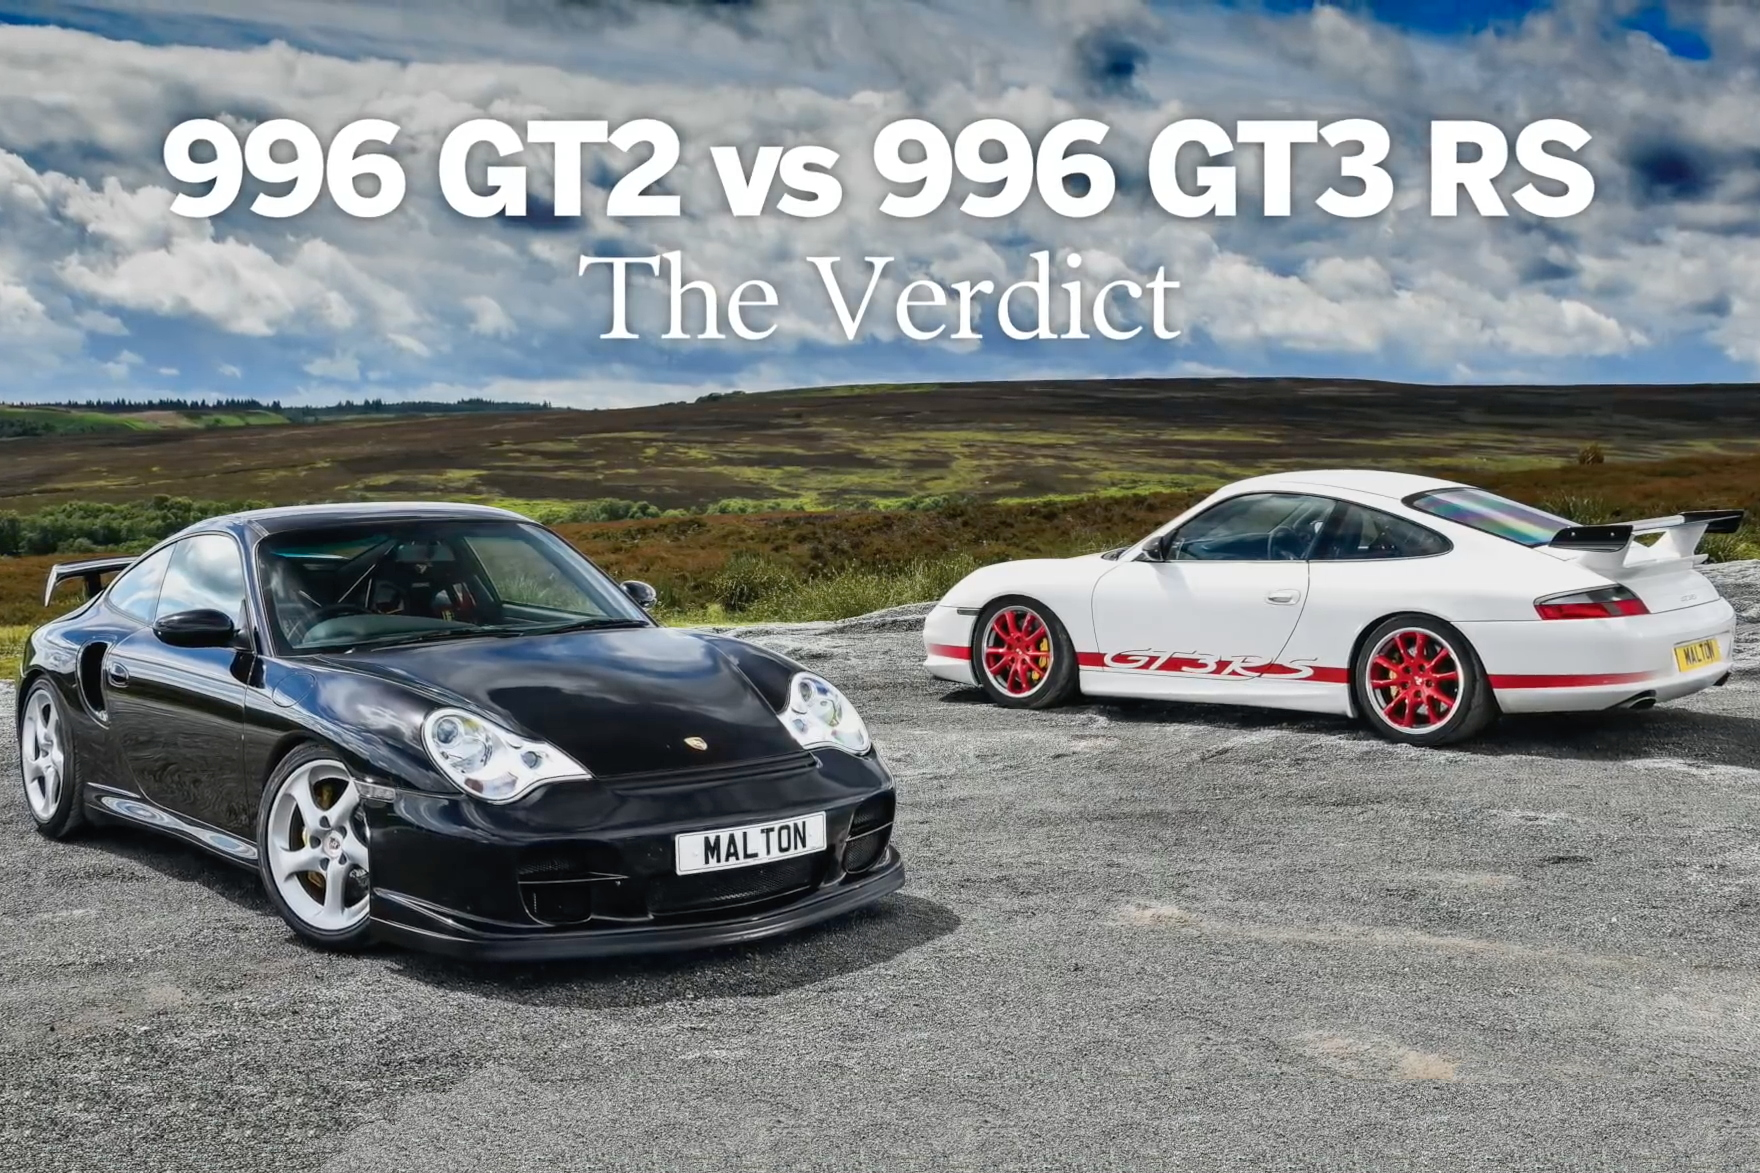 video porsche 996 gt2 v gt3 rs our verdict total 911. Black Bedroom Furniture Sets. Home Design Ideas